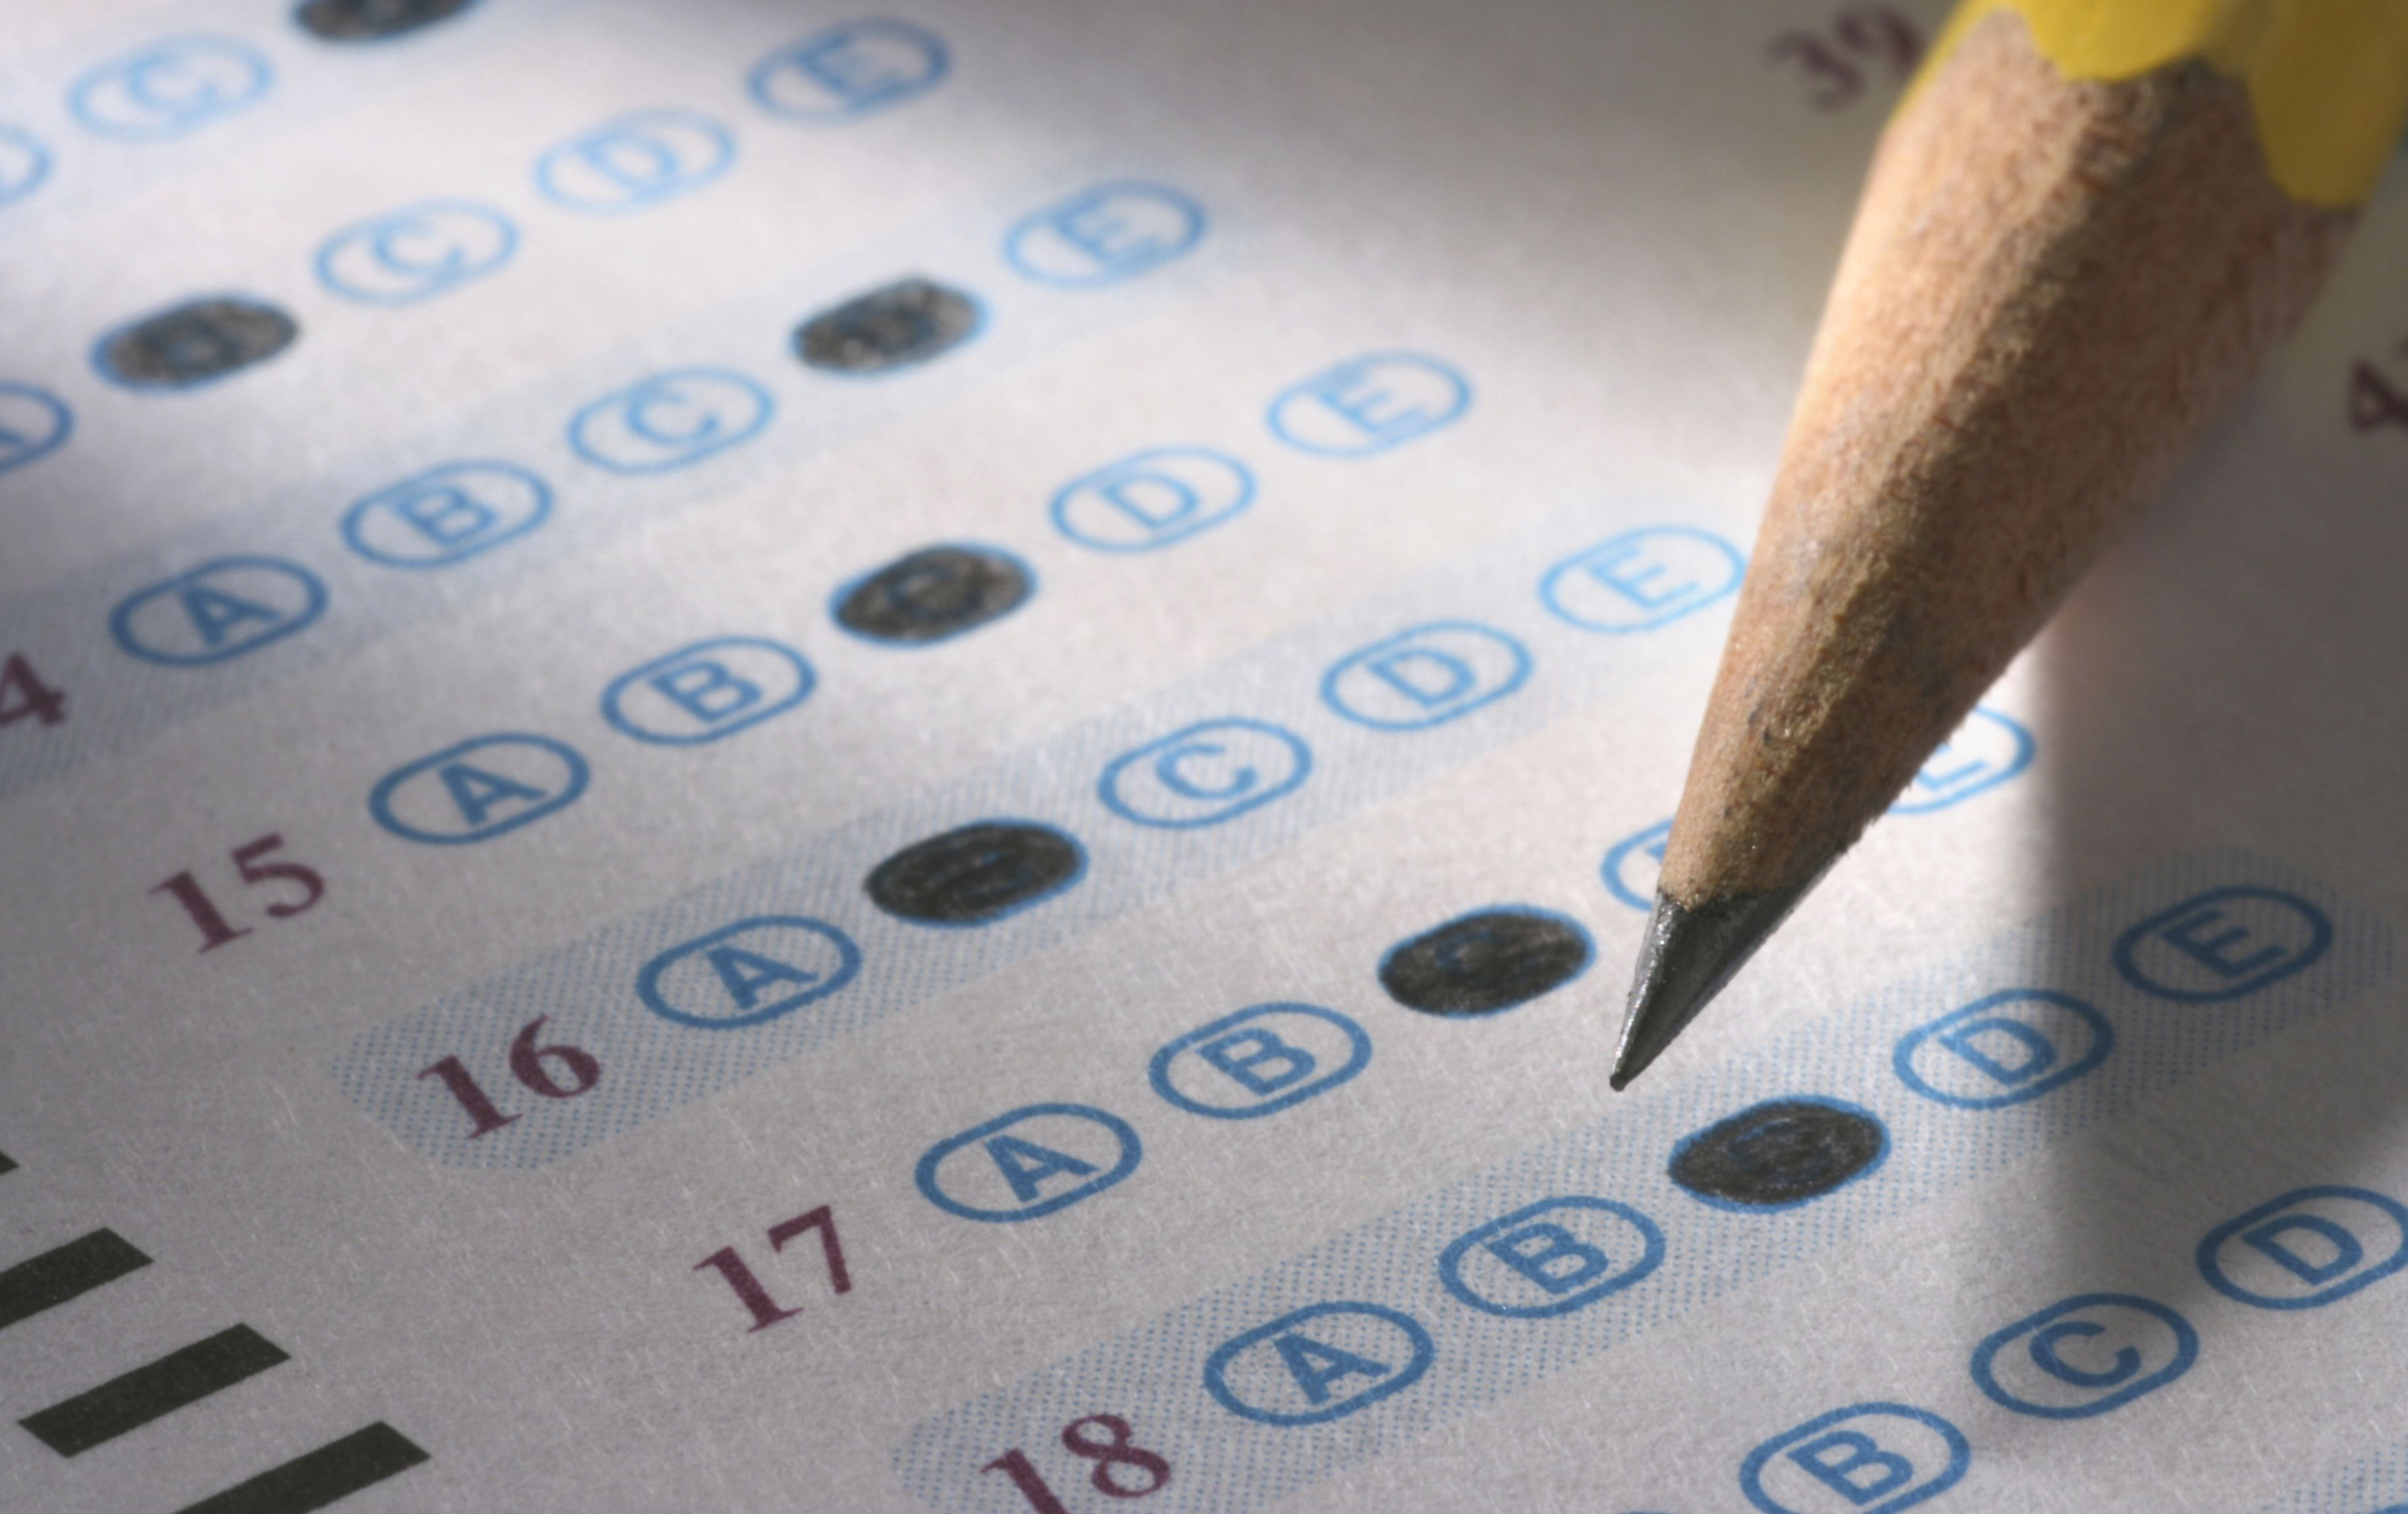 What Are The Differences Between The Sat And Act Exams